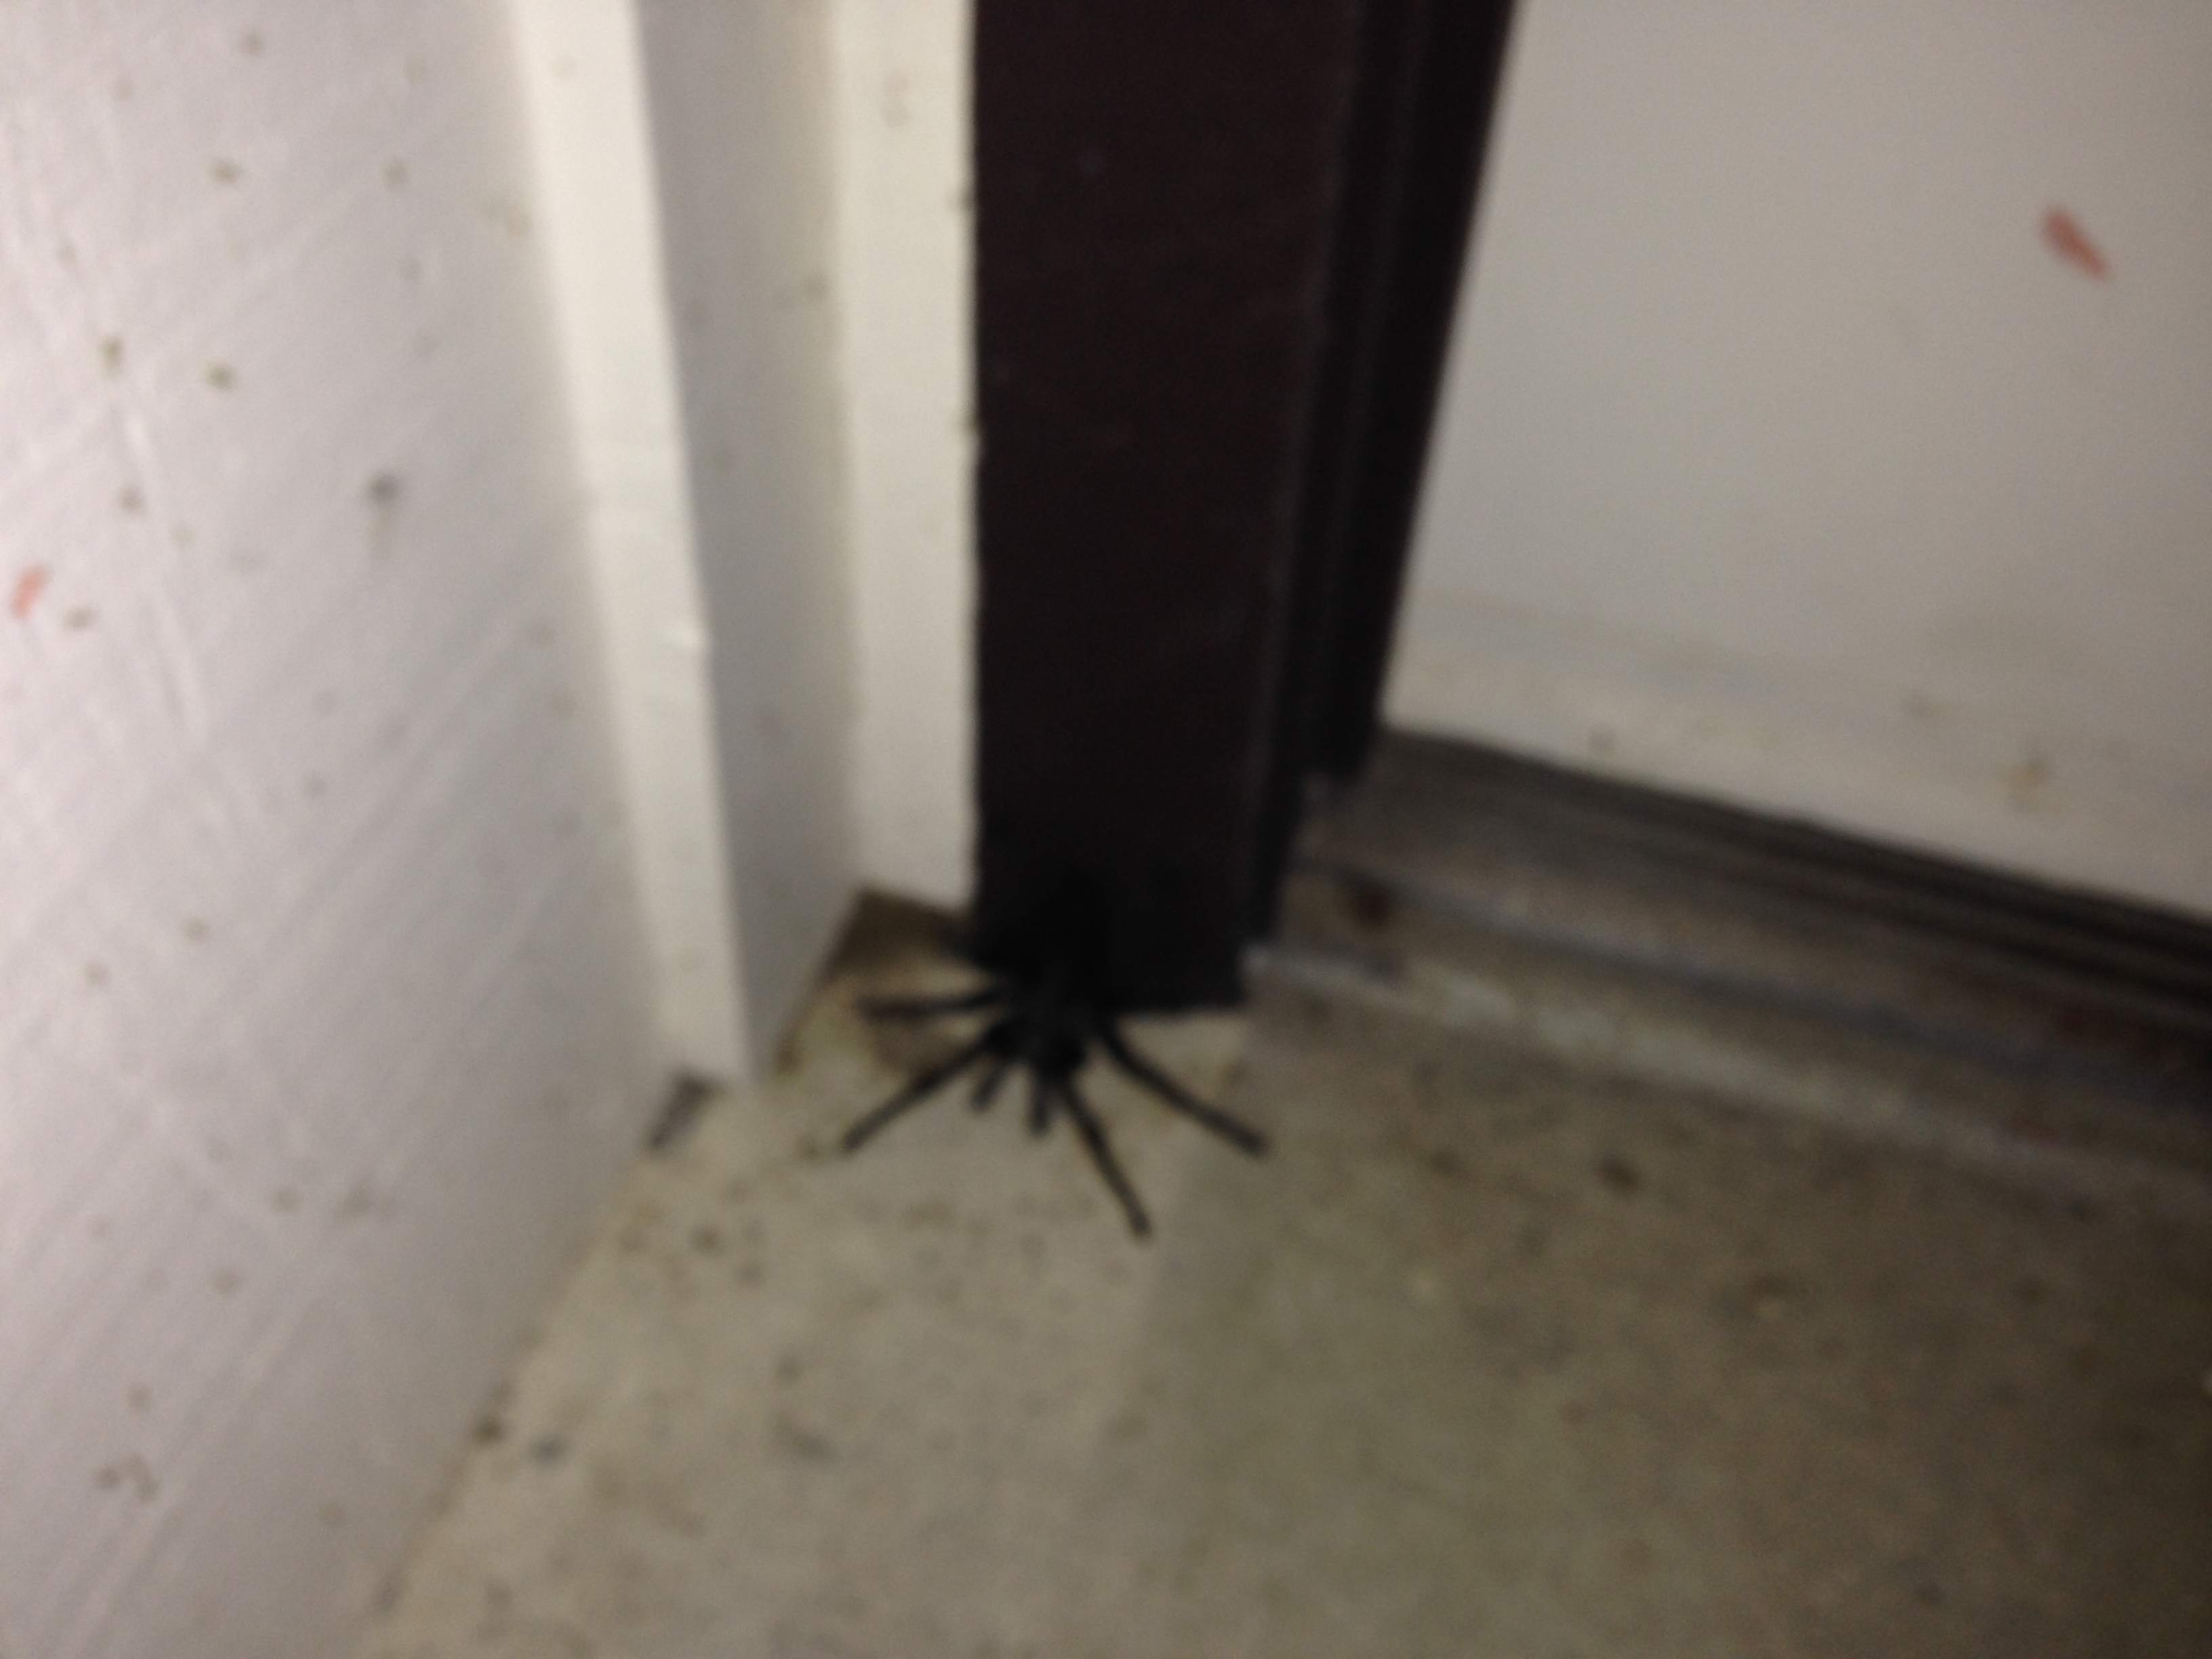 Ranch life - or should I say tarantula life? Popular lore has it that after a to-be-unnamed member of our party consumed a bit too much of the aforesaid Macallan, and then vomited, this arachnid emerged from the woods to feast on the puke. Circle of life?